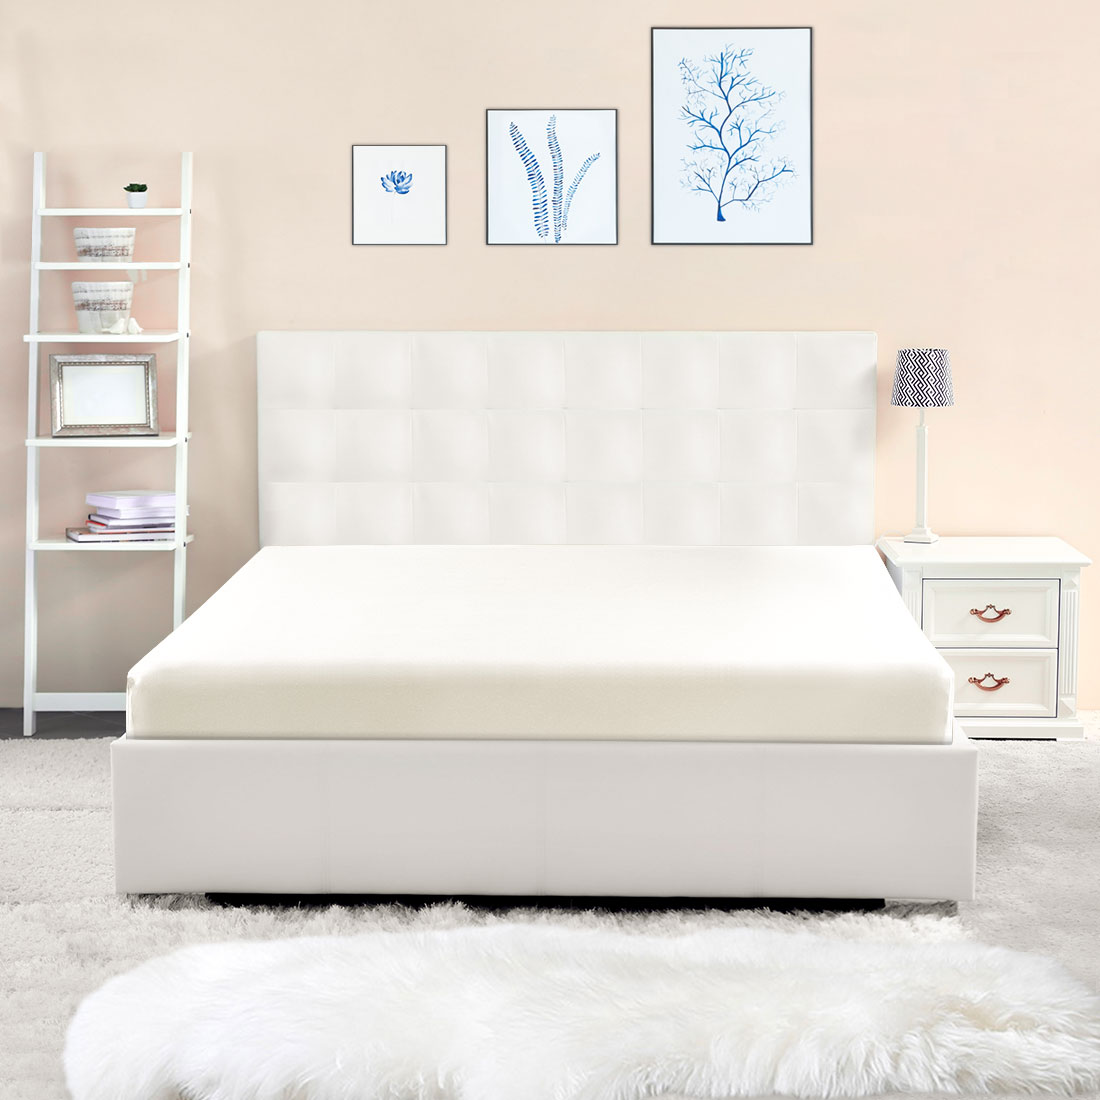 Washed Cotton Fitted Sheet with Large Elastic Pocket Bed Sheets Cream Queen